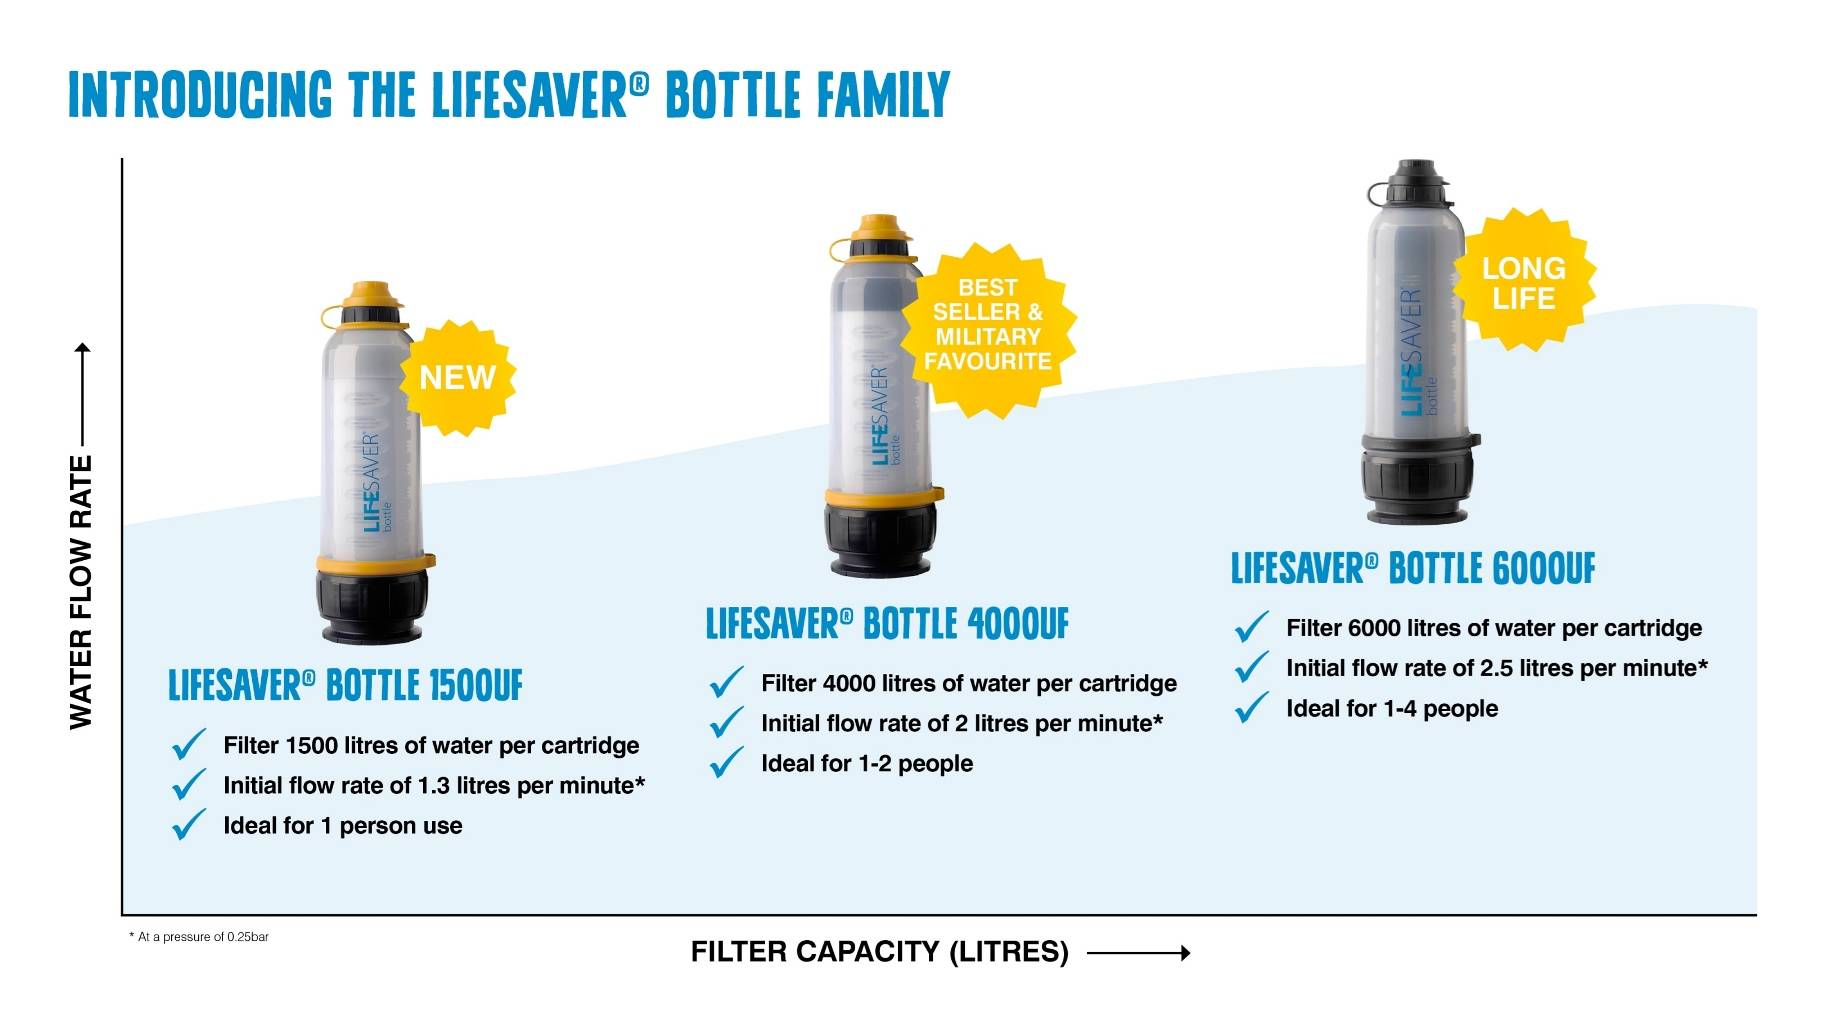 ccad951dbb The most portable product provides up to 20,000 litres of clean drinking  water. The company has 4 maіn products, the LІFESAVER bottle, LІFESAVER  jerrycan ...